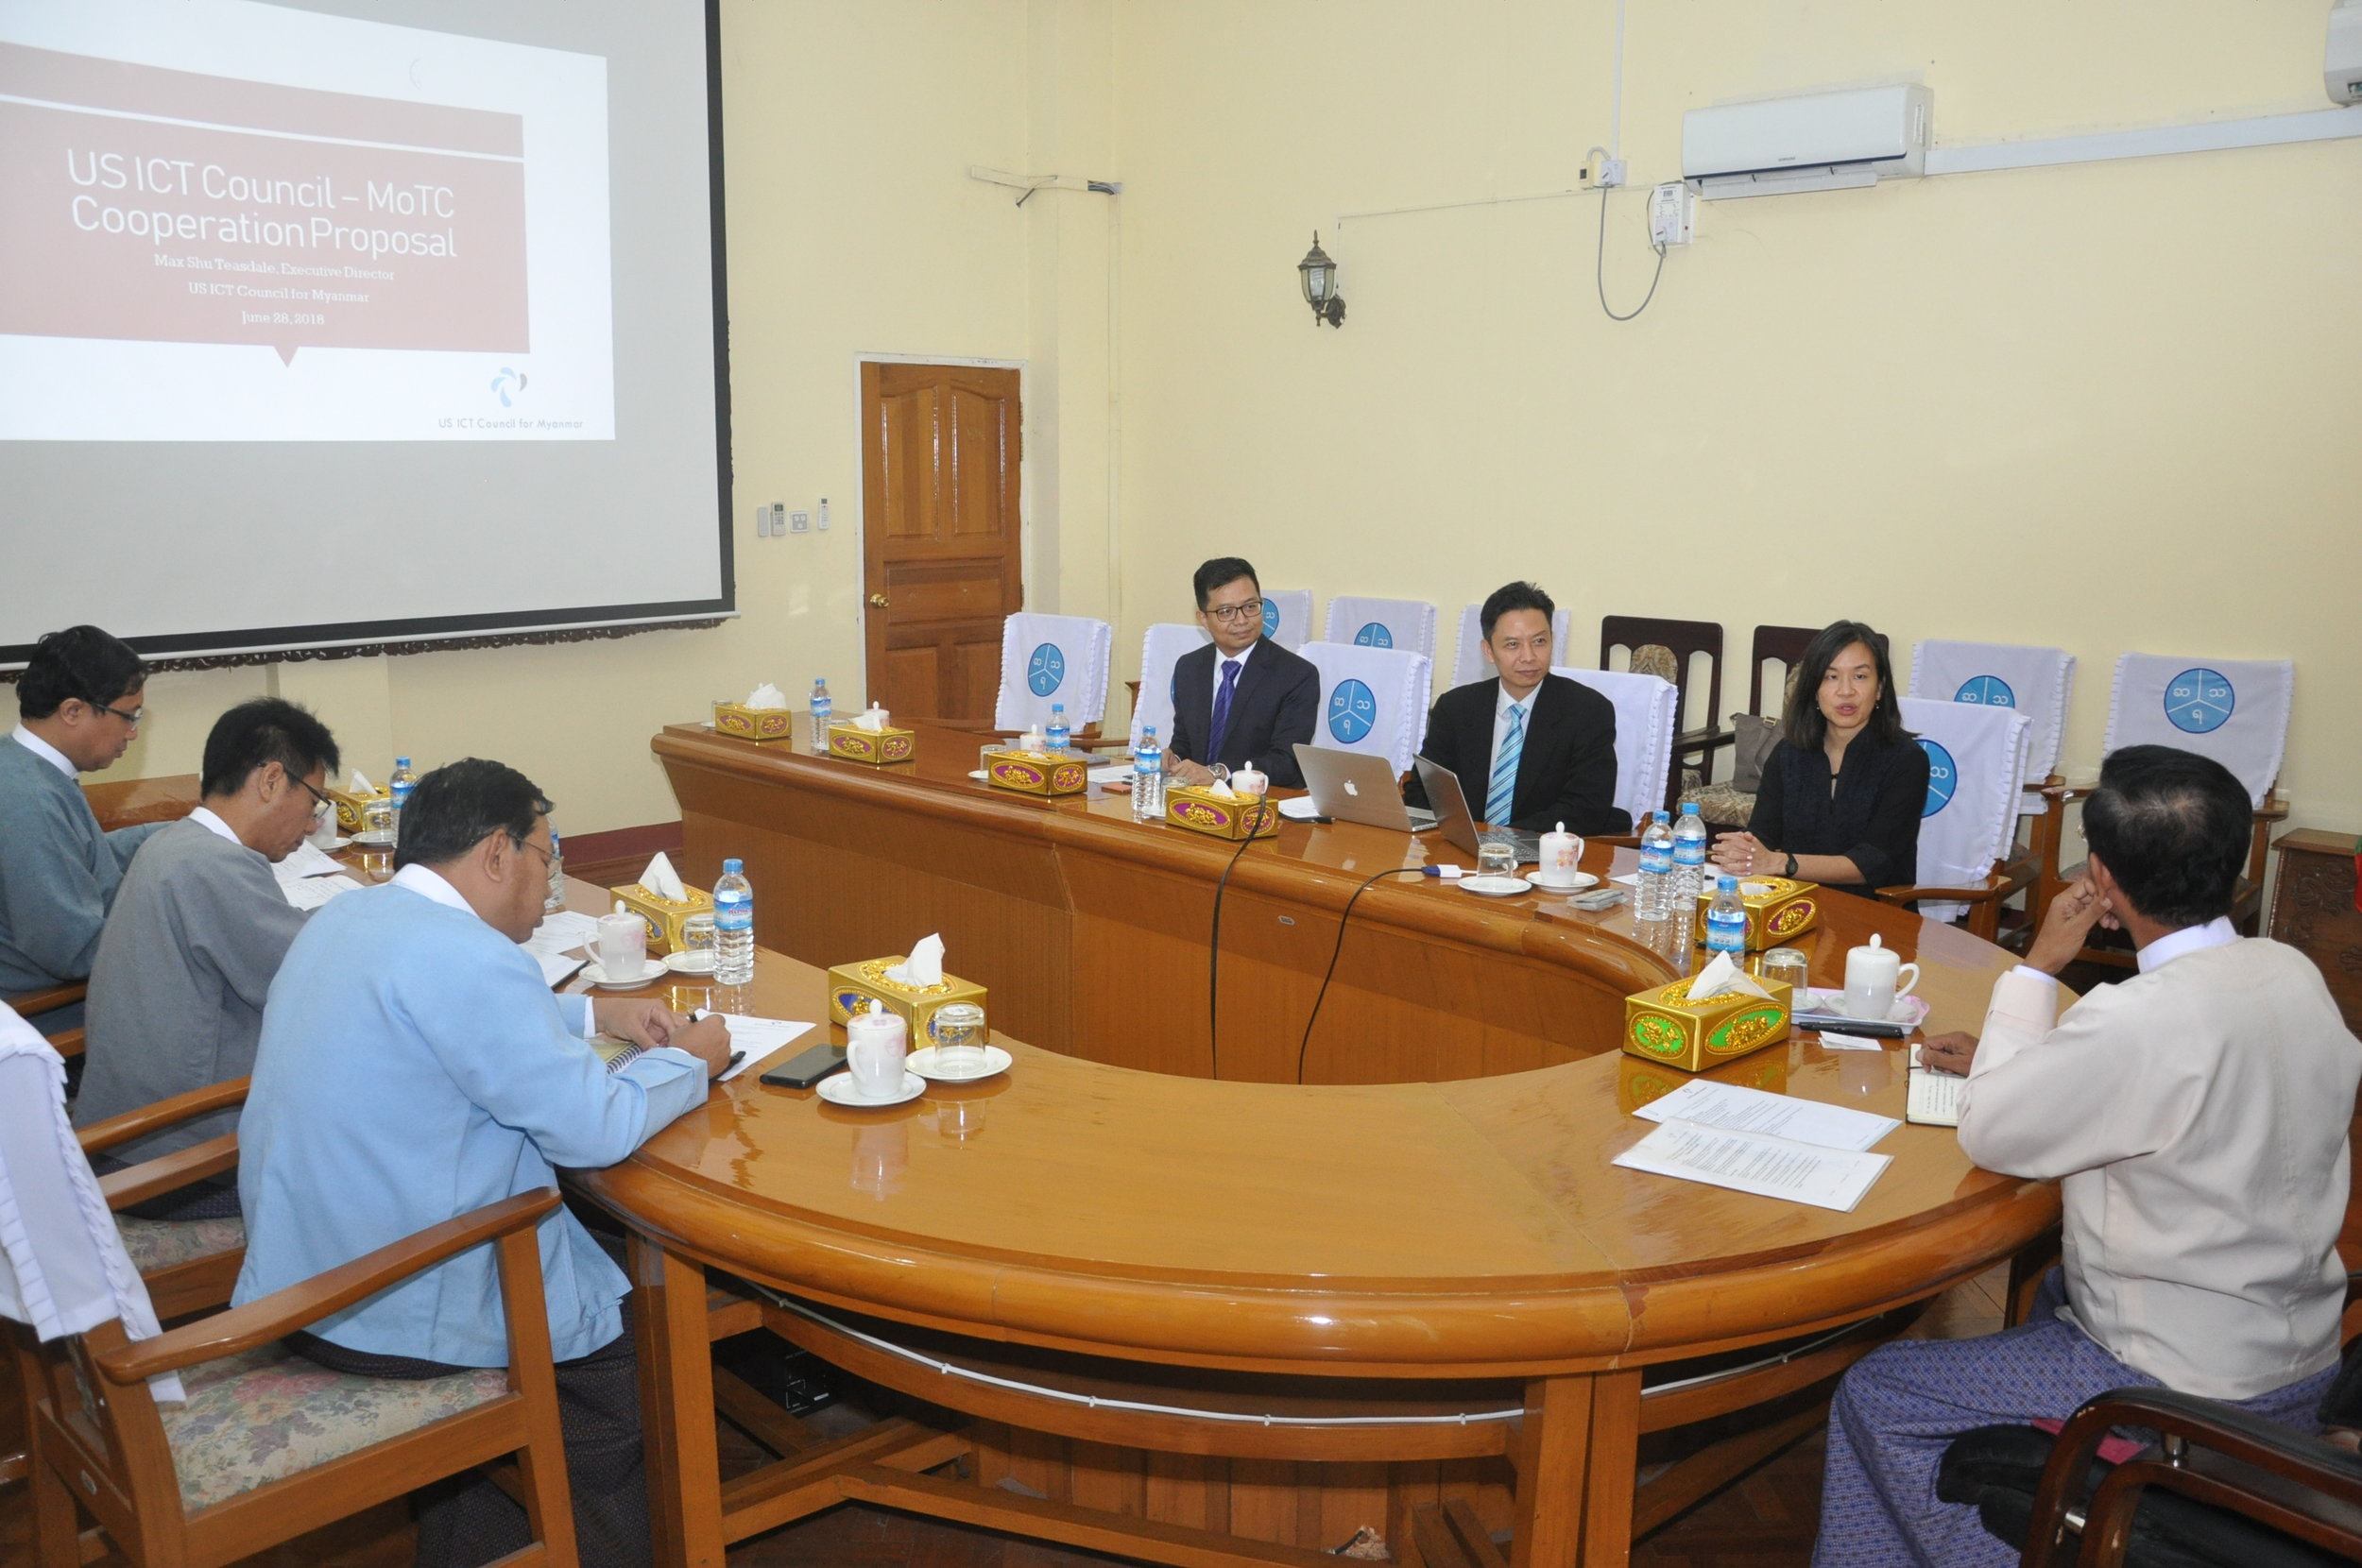 US ICT Council members meet with Deputy Minister of Transport & Communications, U Tha Oo in Naypyitaw